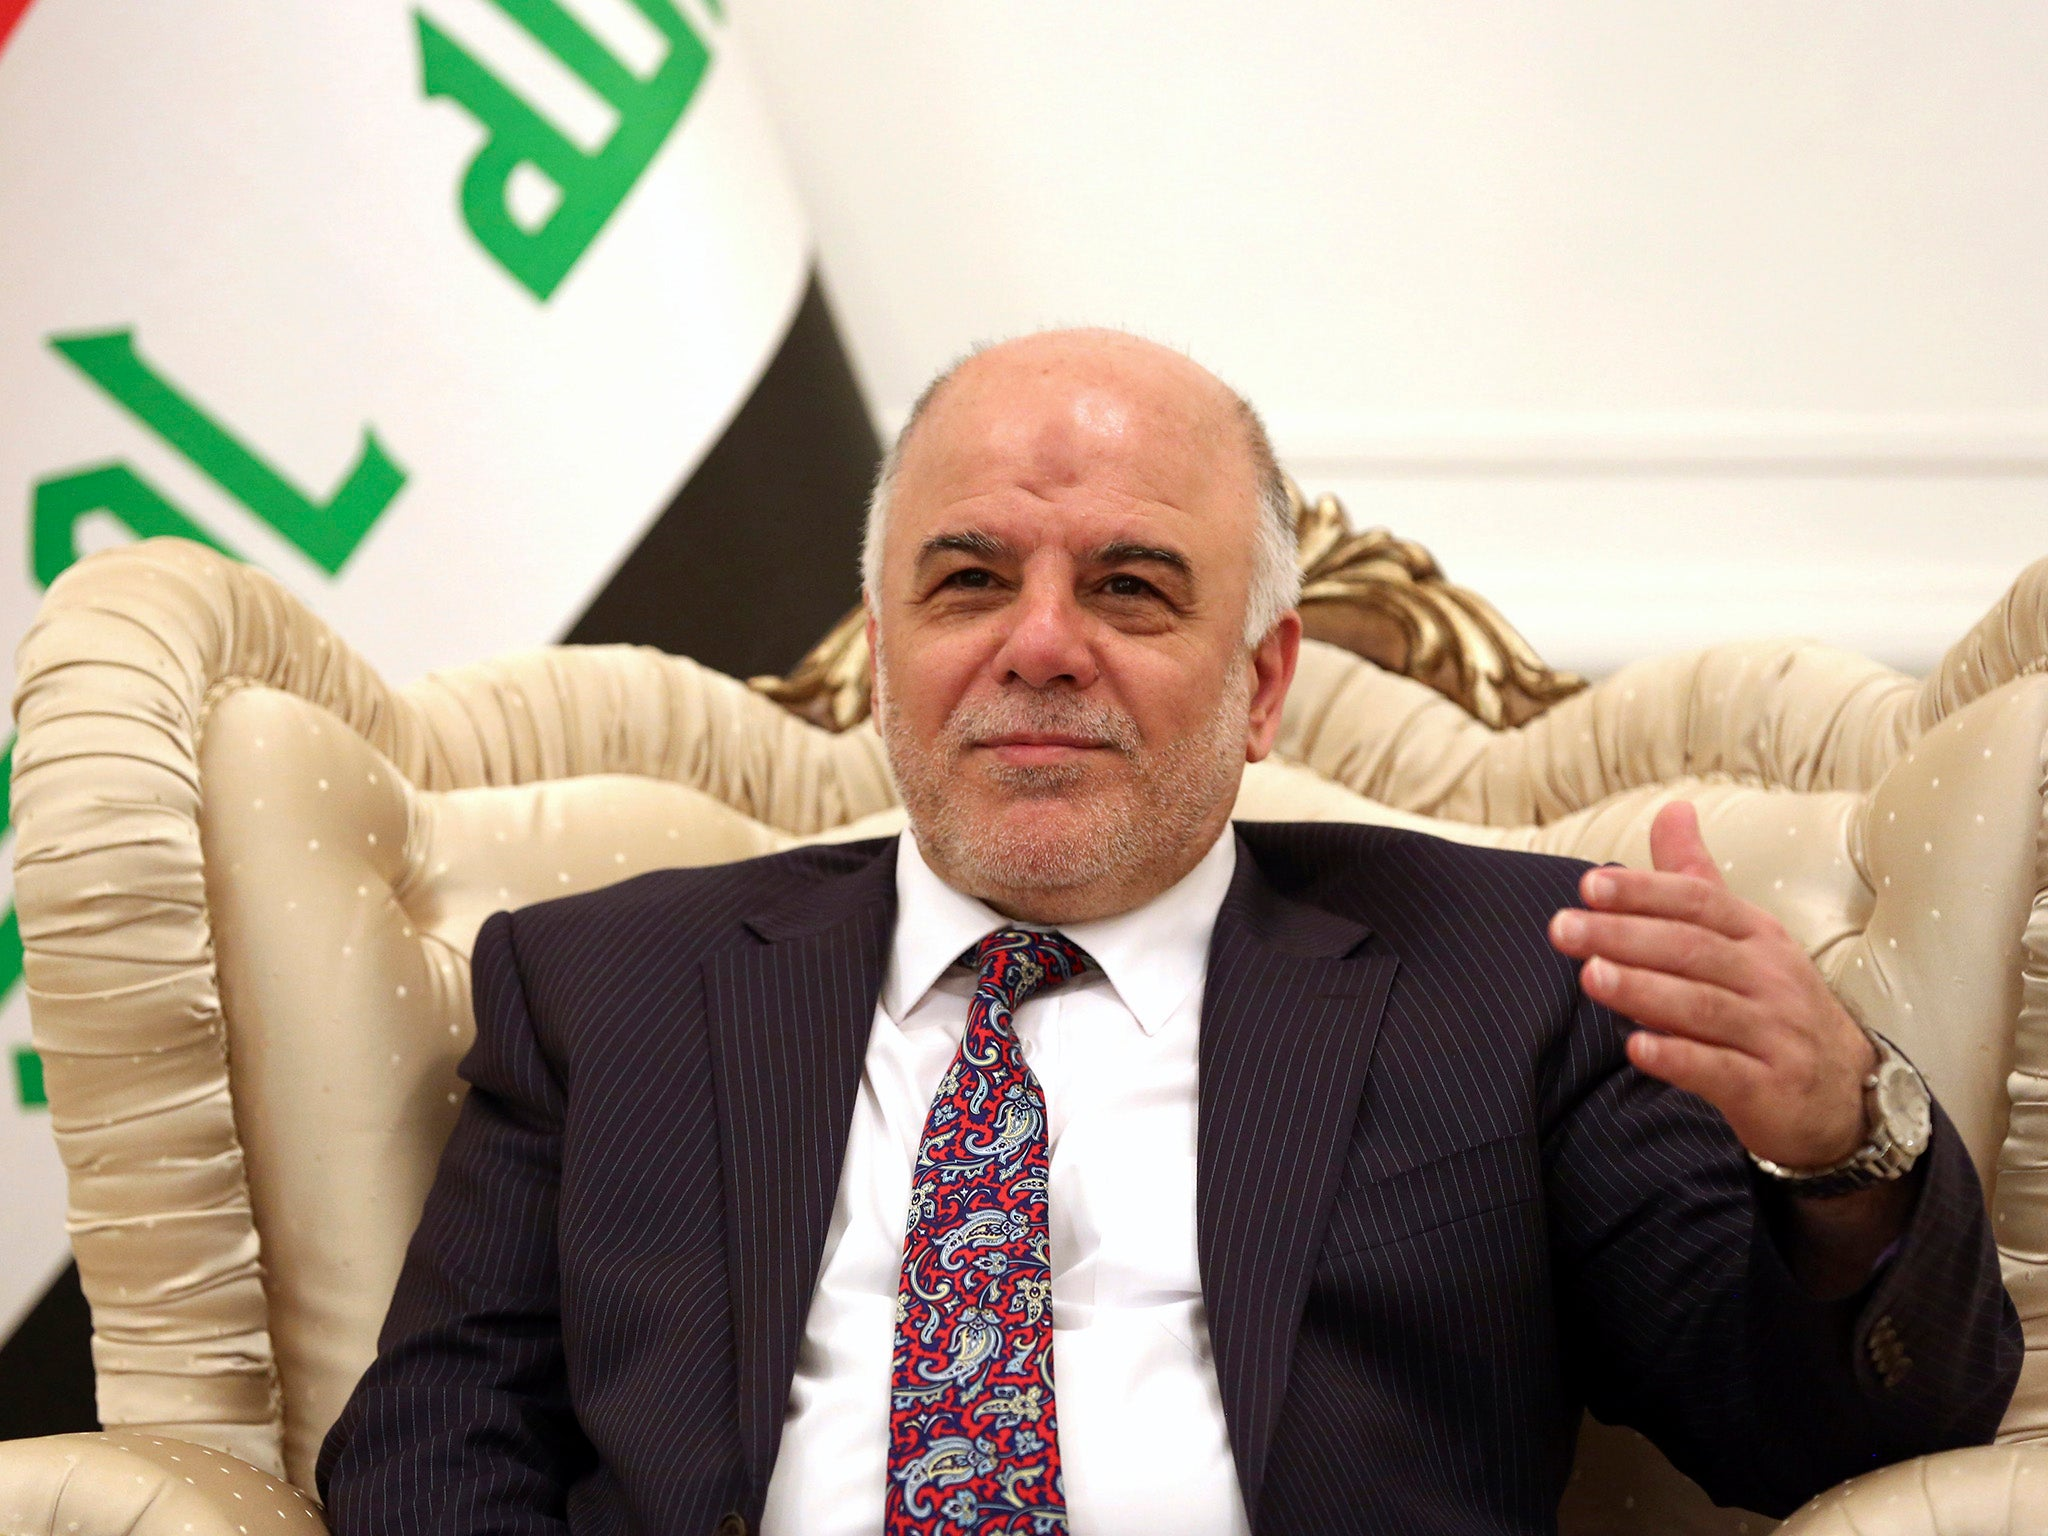 This is what happened when I met Haider al-Abadi, the former – and possibly future – prime minister of Iraq